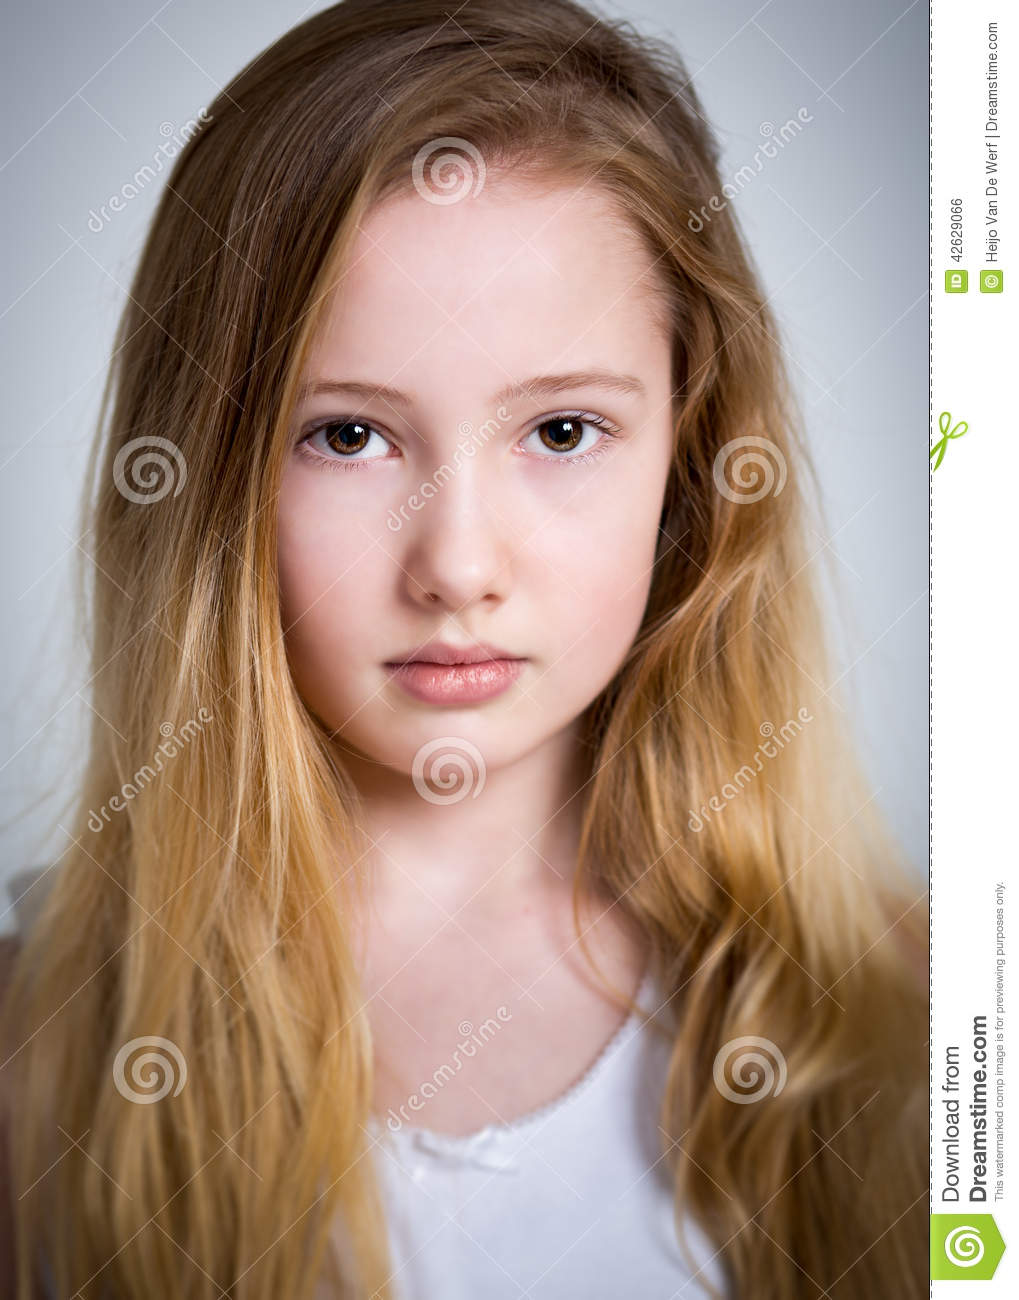 Une Fille French Teenage Fashion For Spring 2016: Belle Jeune Fille Blonde Timide Photo Stock